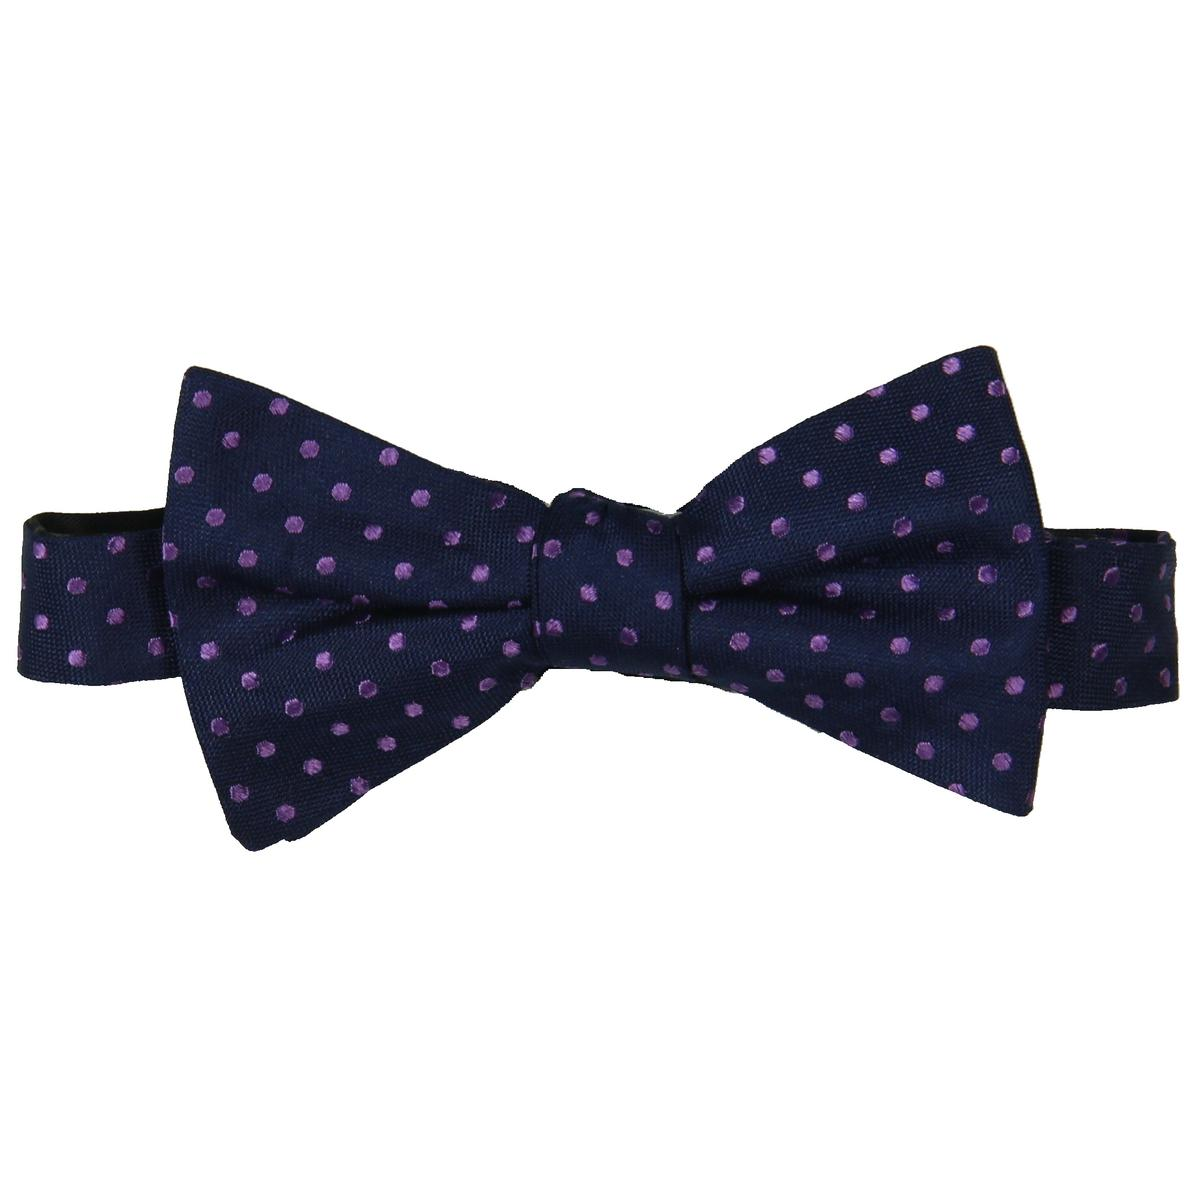 3fa61cf0a7 Details about Tommy Hilfiger Mens Oxford Navy Silk Polka Dot Business Bow  Tie O S BHFO 6815